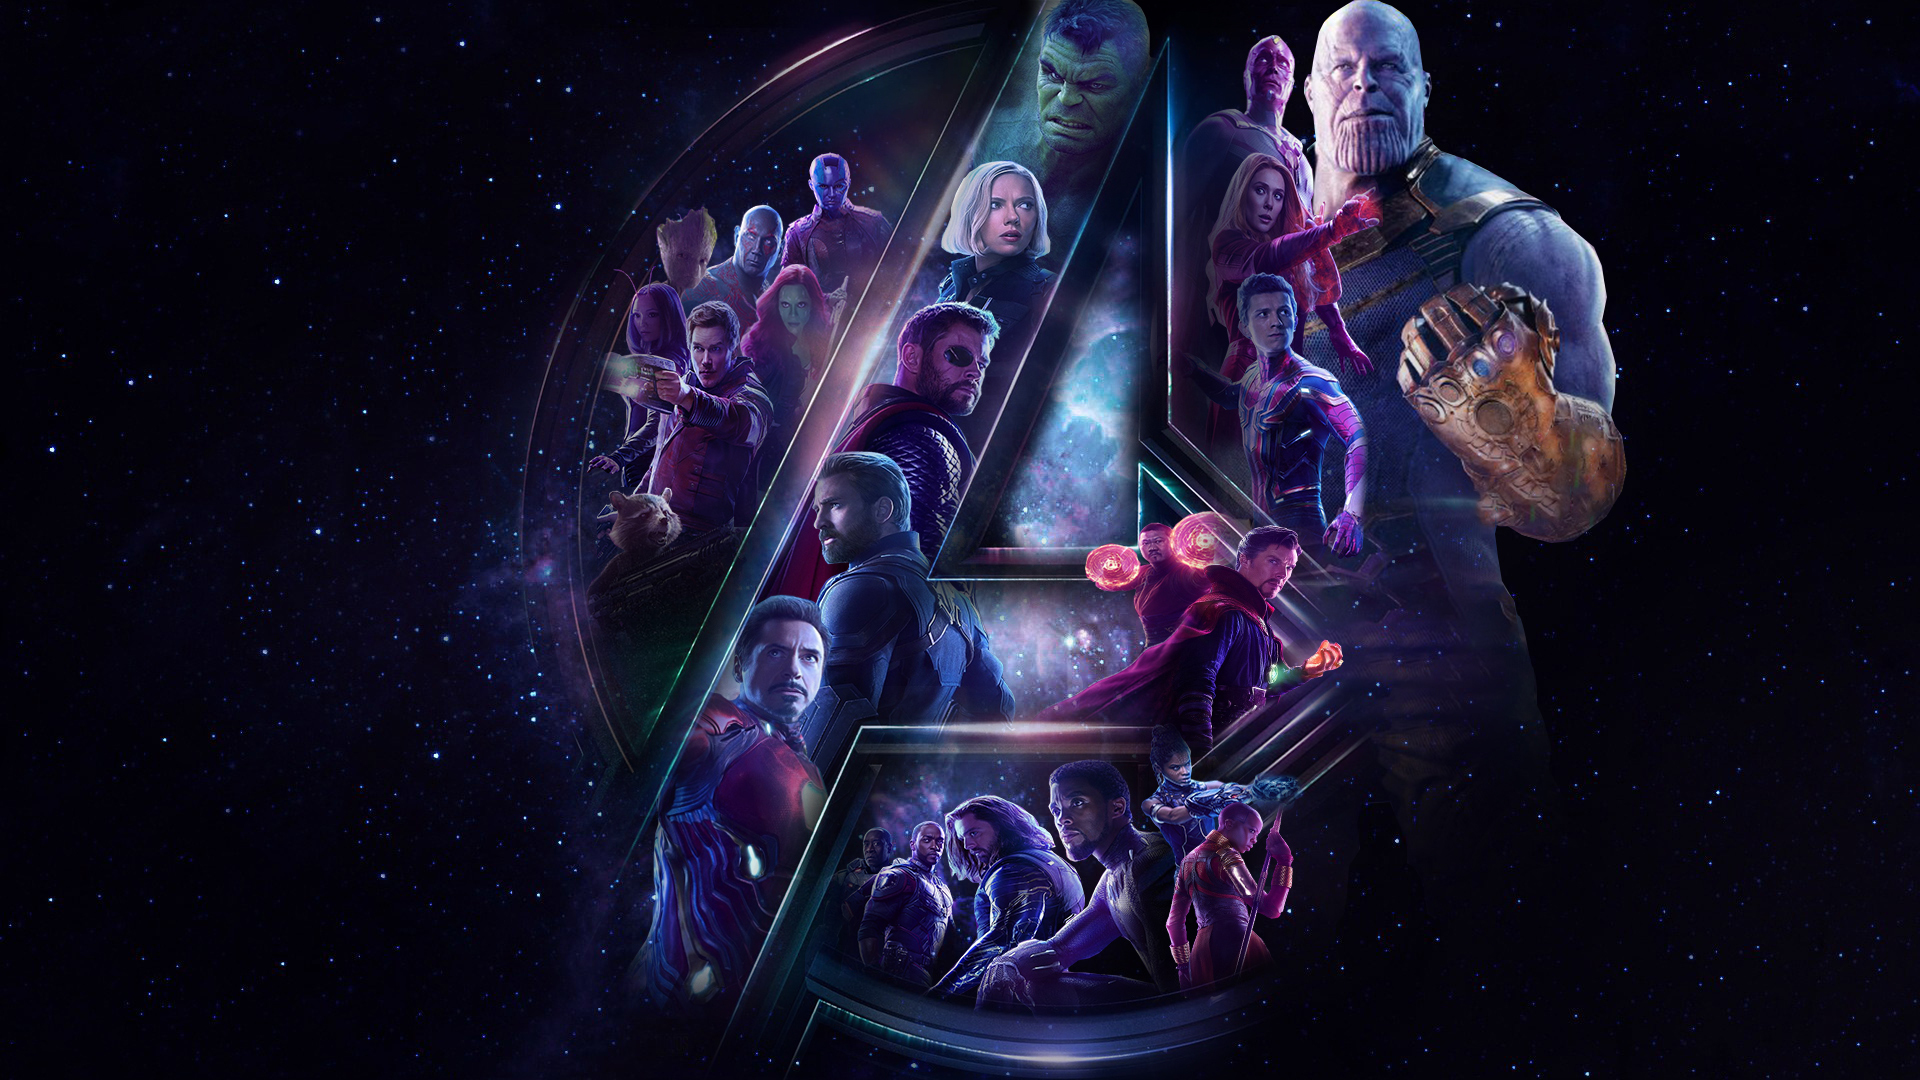 1920x1080 avengers infinity war characters poster laptop full hd